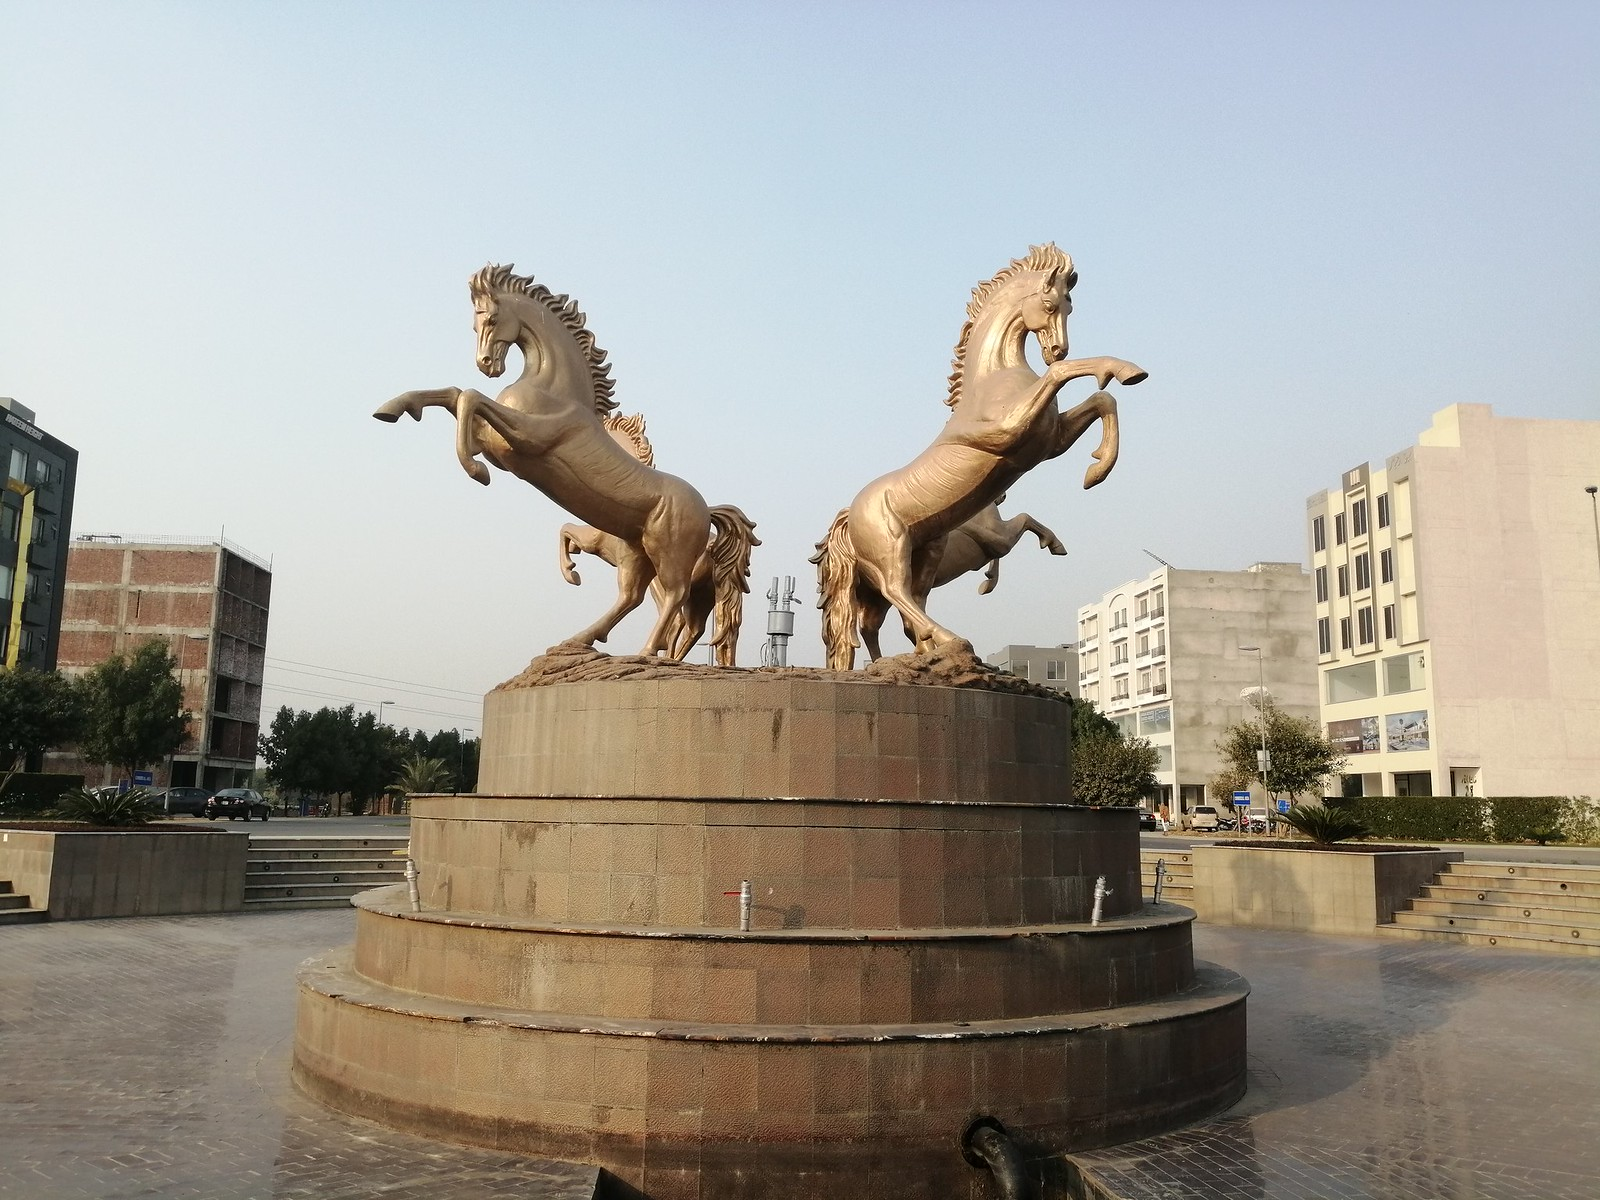 Picture of Horses Statue with HDR Mode on Huawei Y9 2019